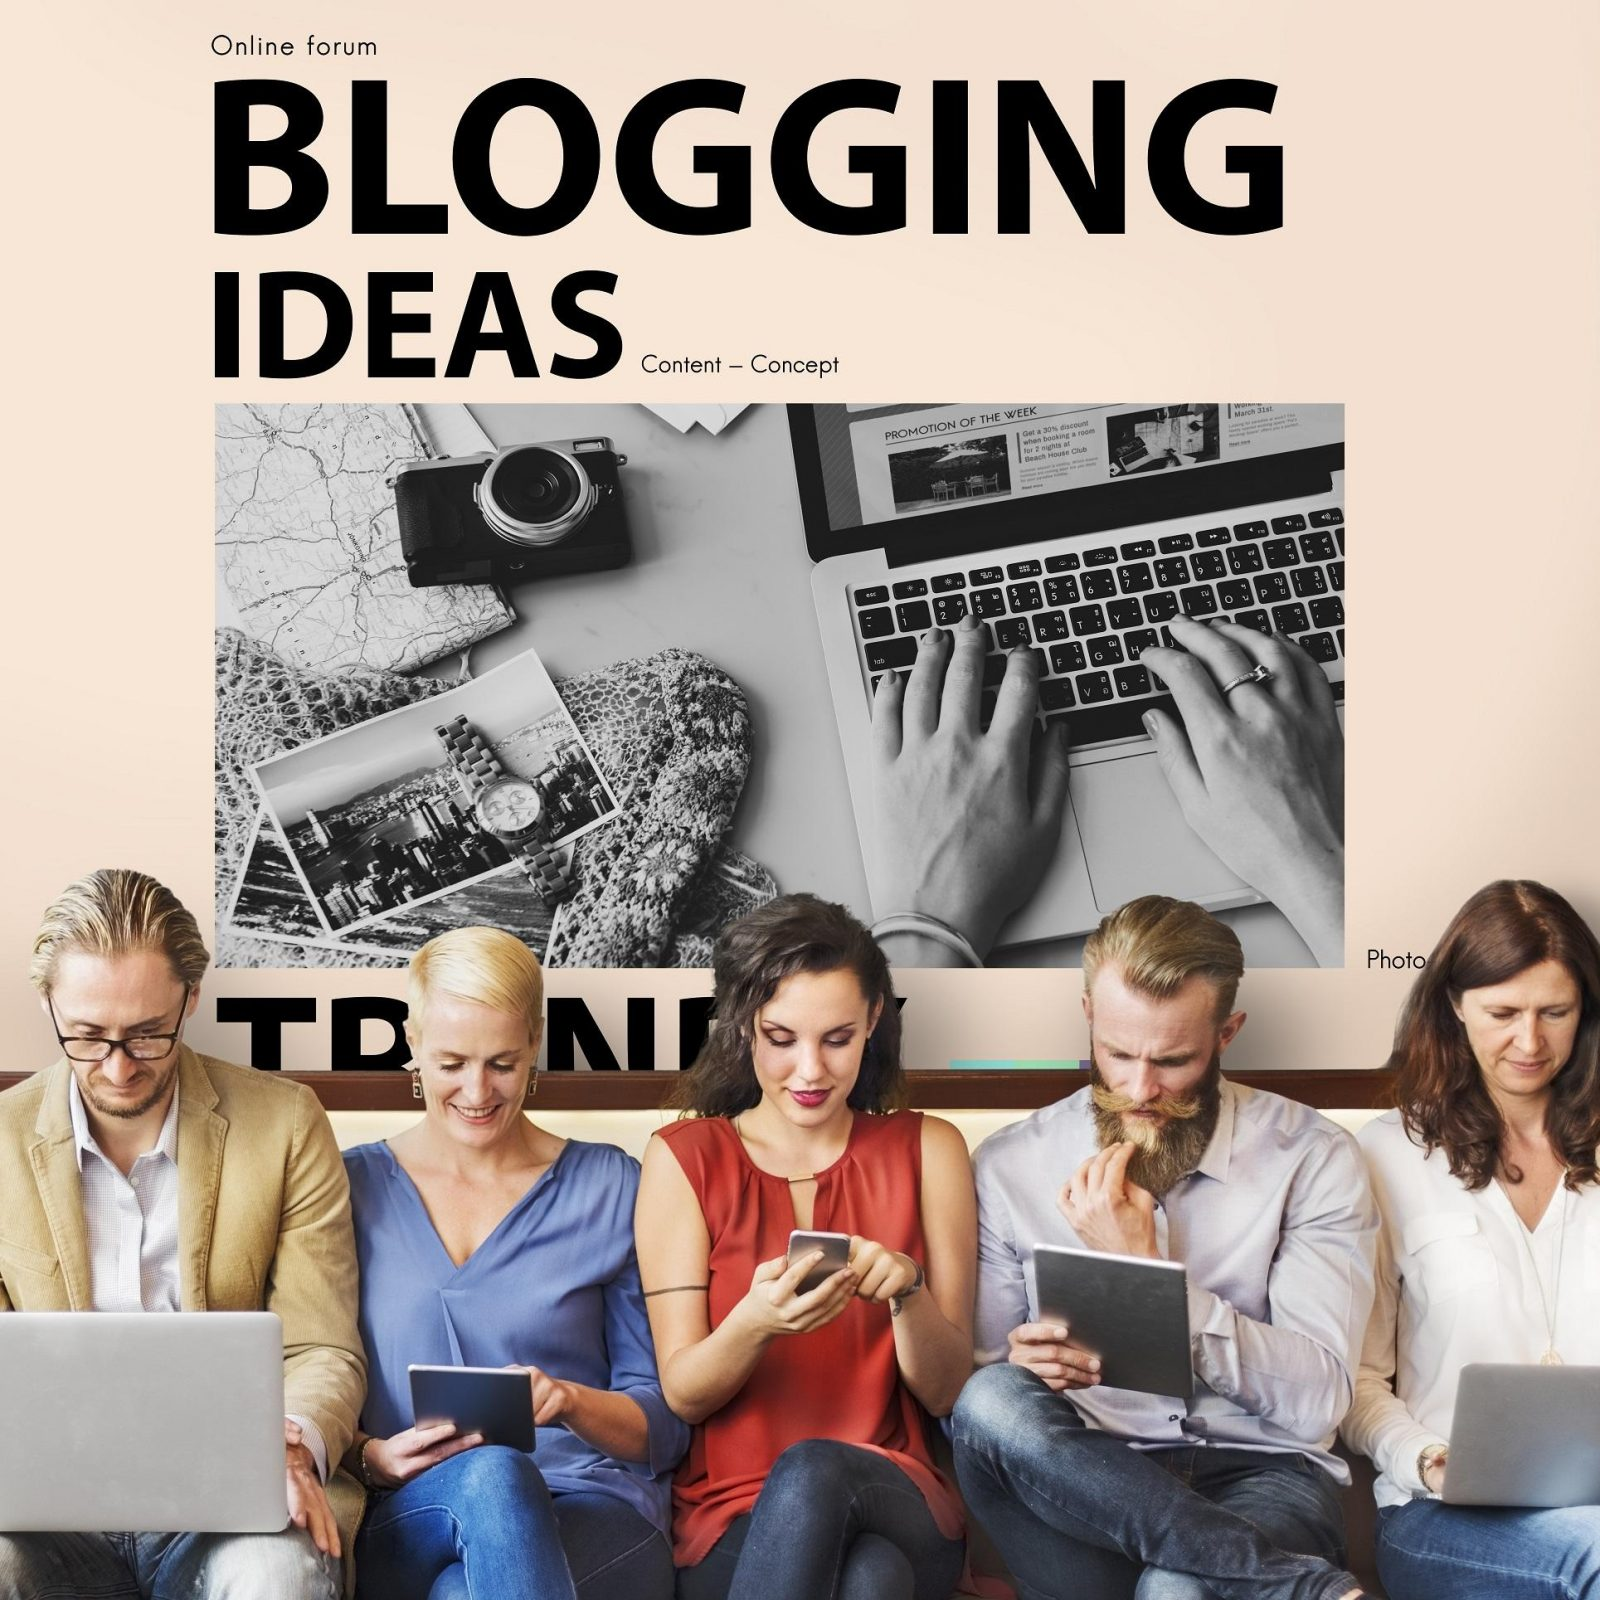 """Five people sit looking at their various devices in front of a large photograph beneath the title """"Blogging Ideas""""."""